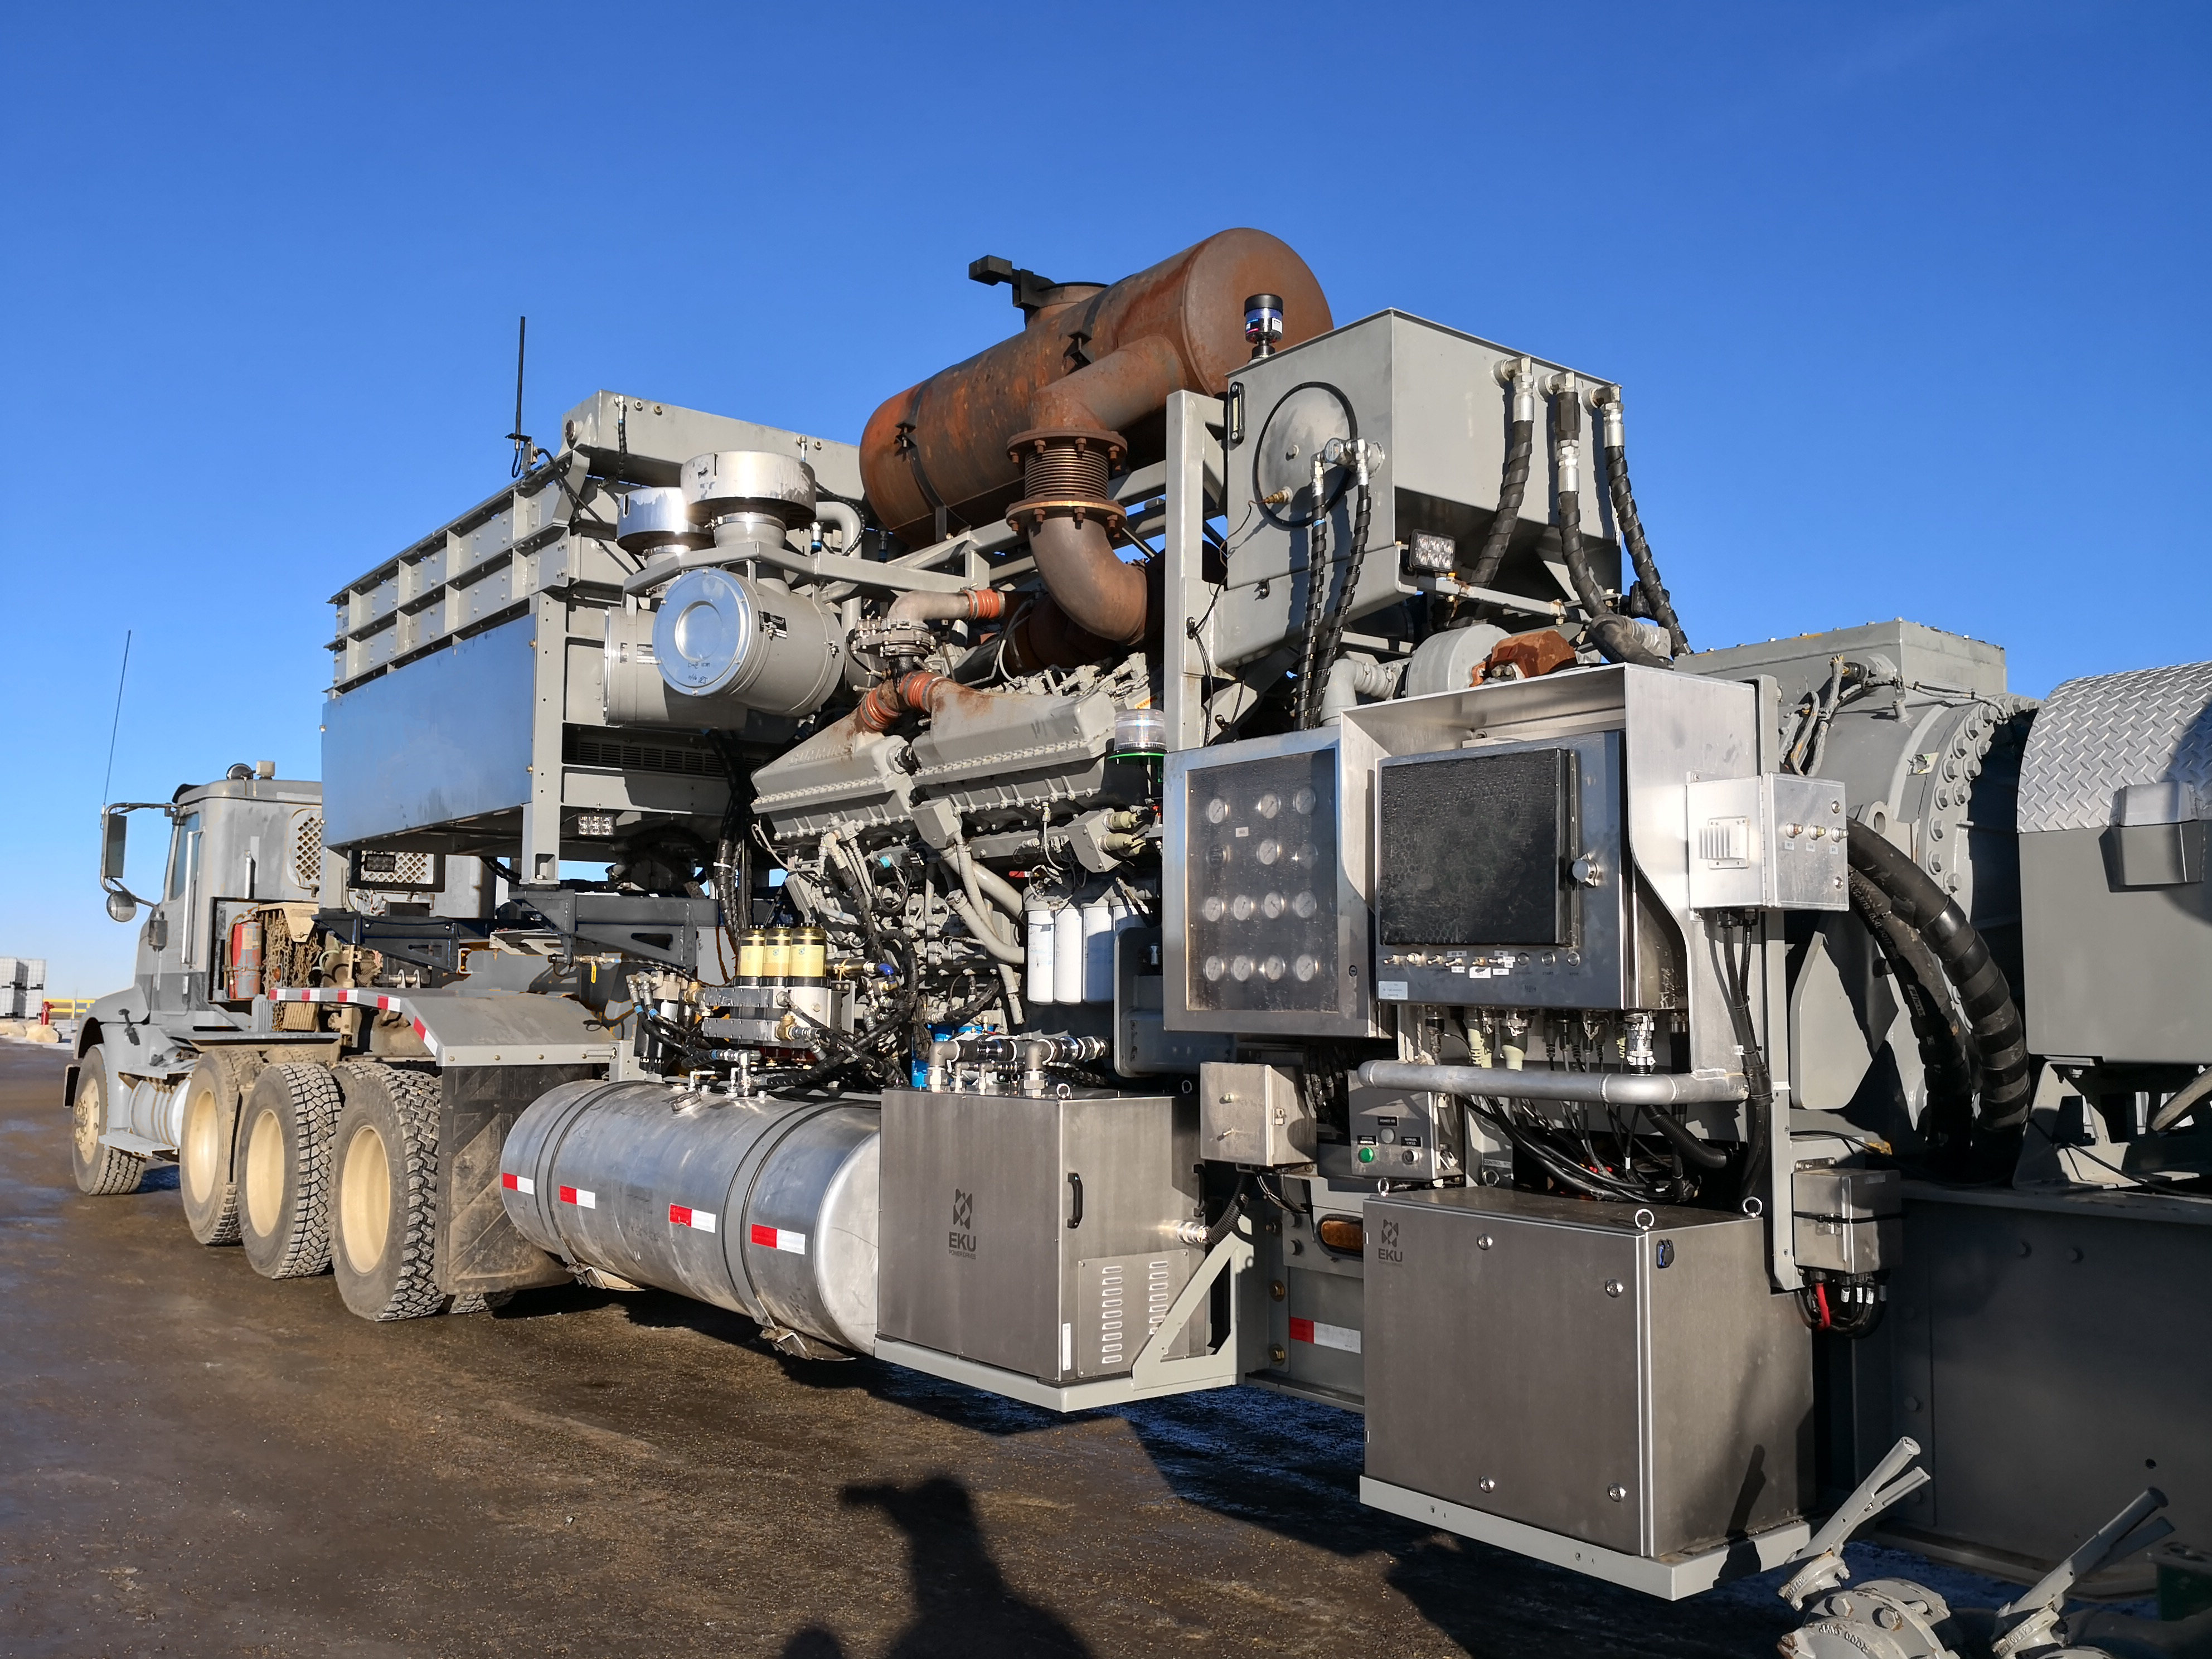 An E&P company's frac pump in North Dakota has EKU systems, an engine standby controller and Vulcan installed.